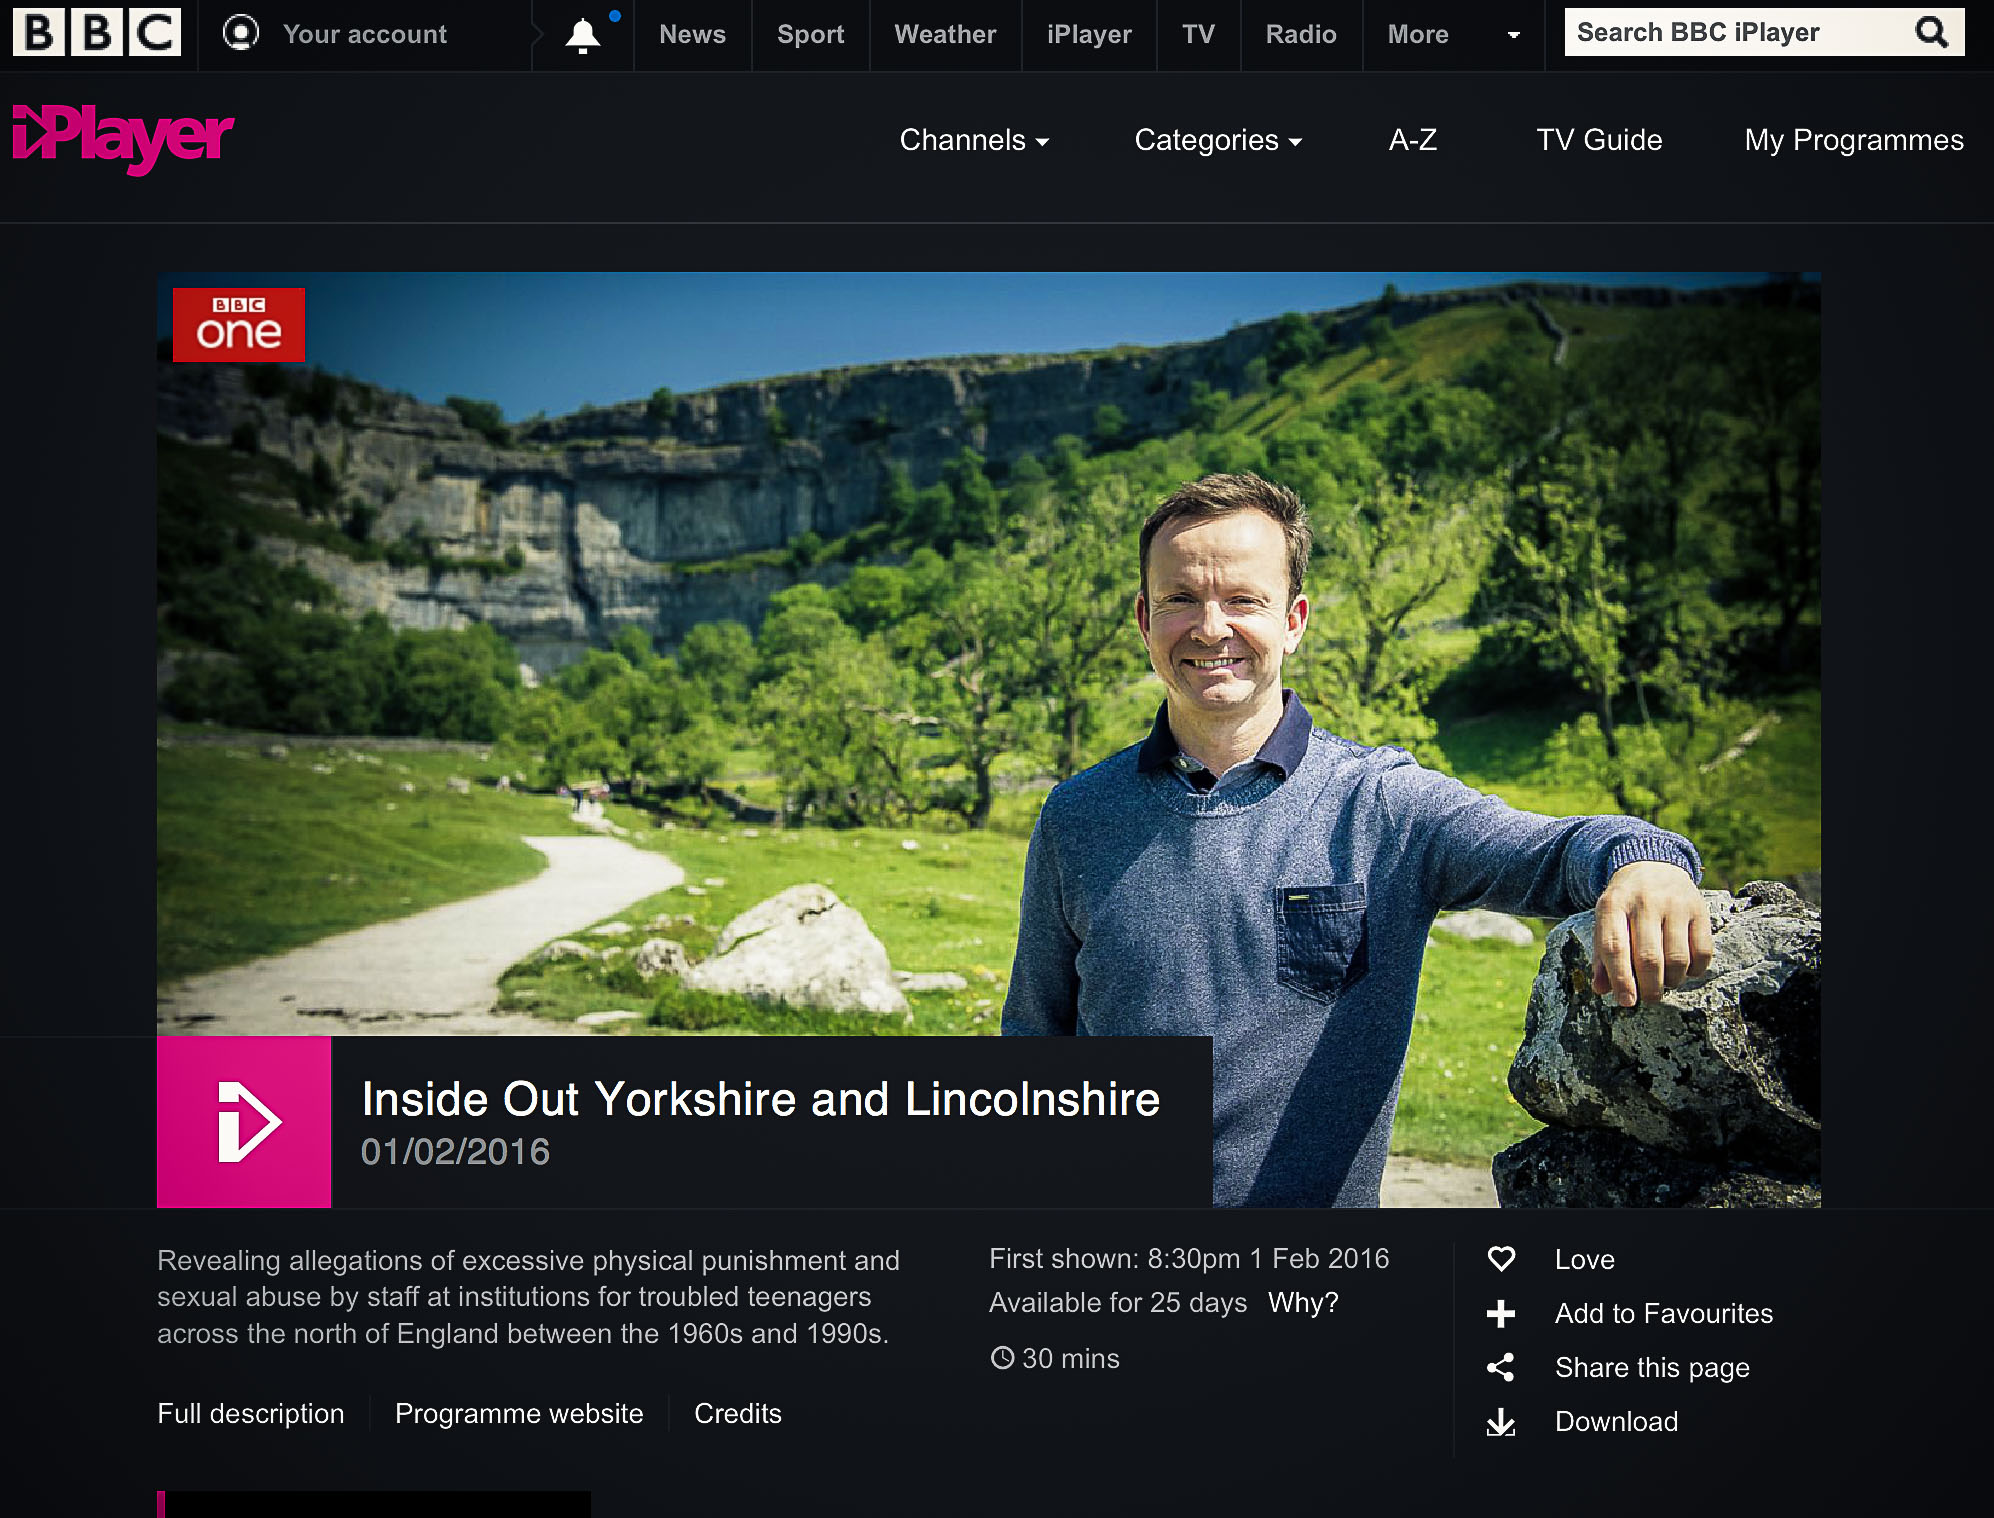 this is a photo of BBC iPlayer Paul Hudson - weather show